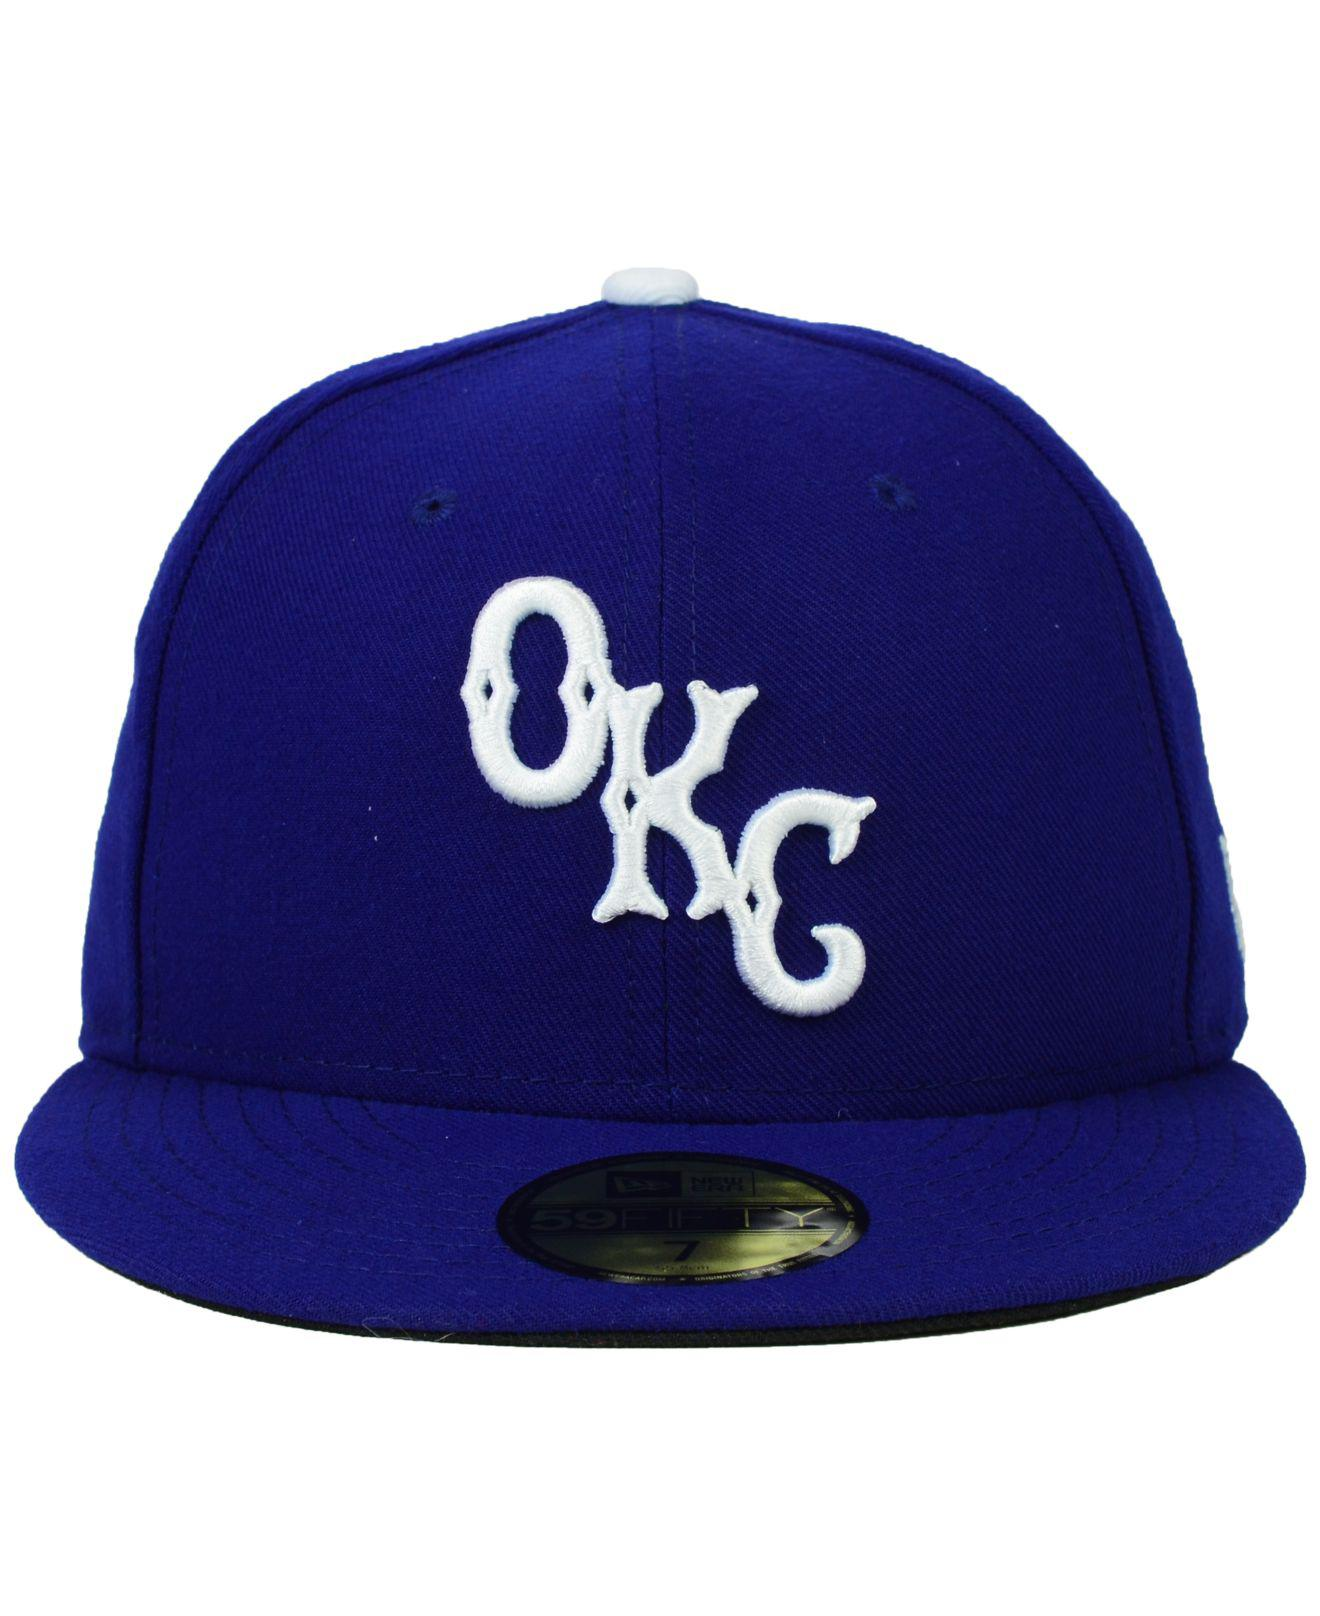 Lyst - KTZ Oklahoma City Dodgers 59fifty Cap in Blue for Men 43300bcc4c13